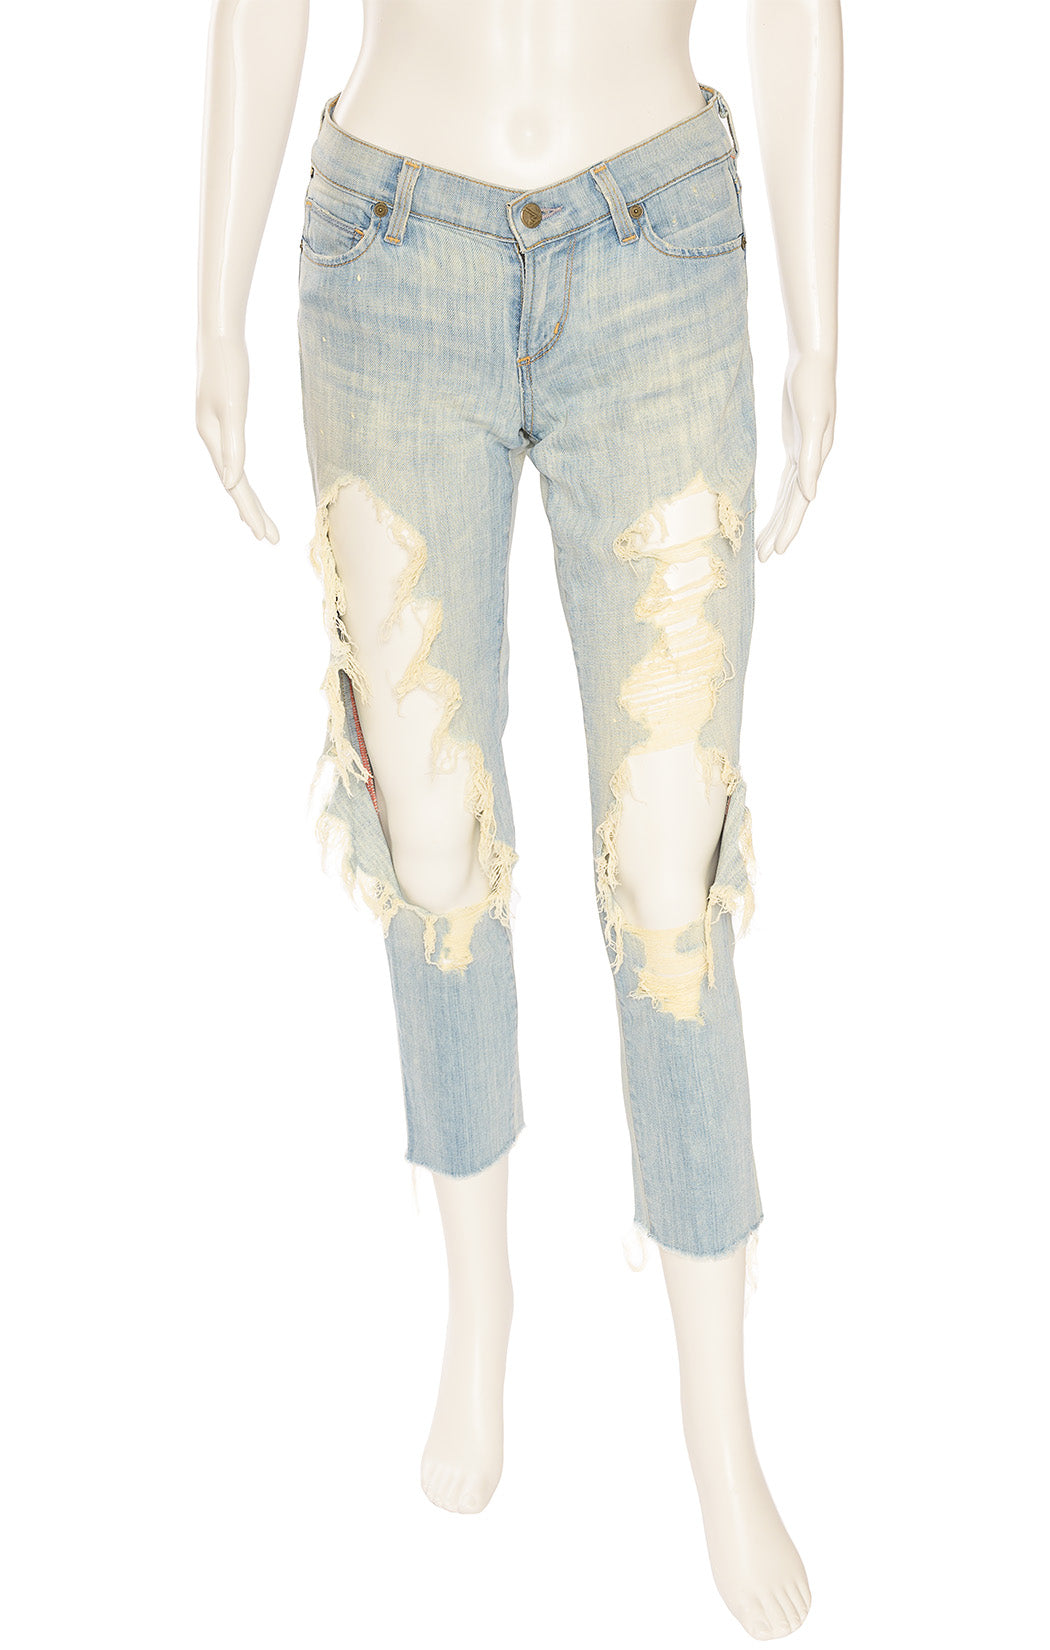 Light denim distressed ripped jeans